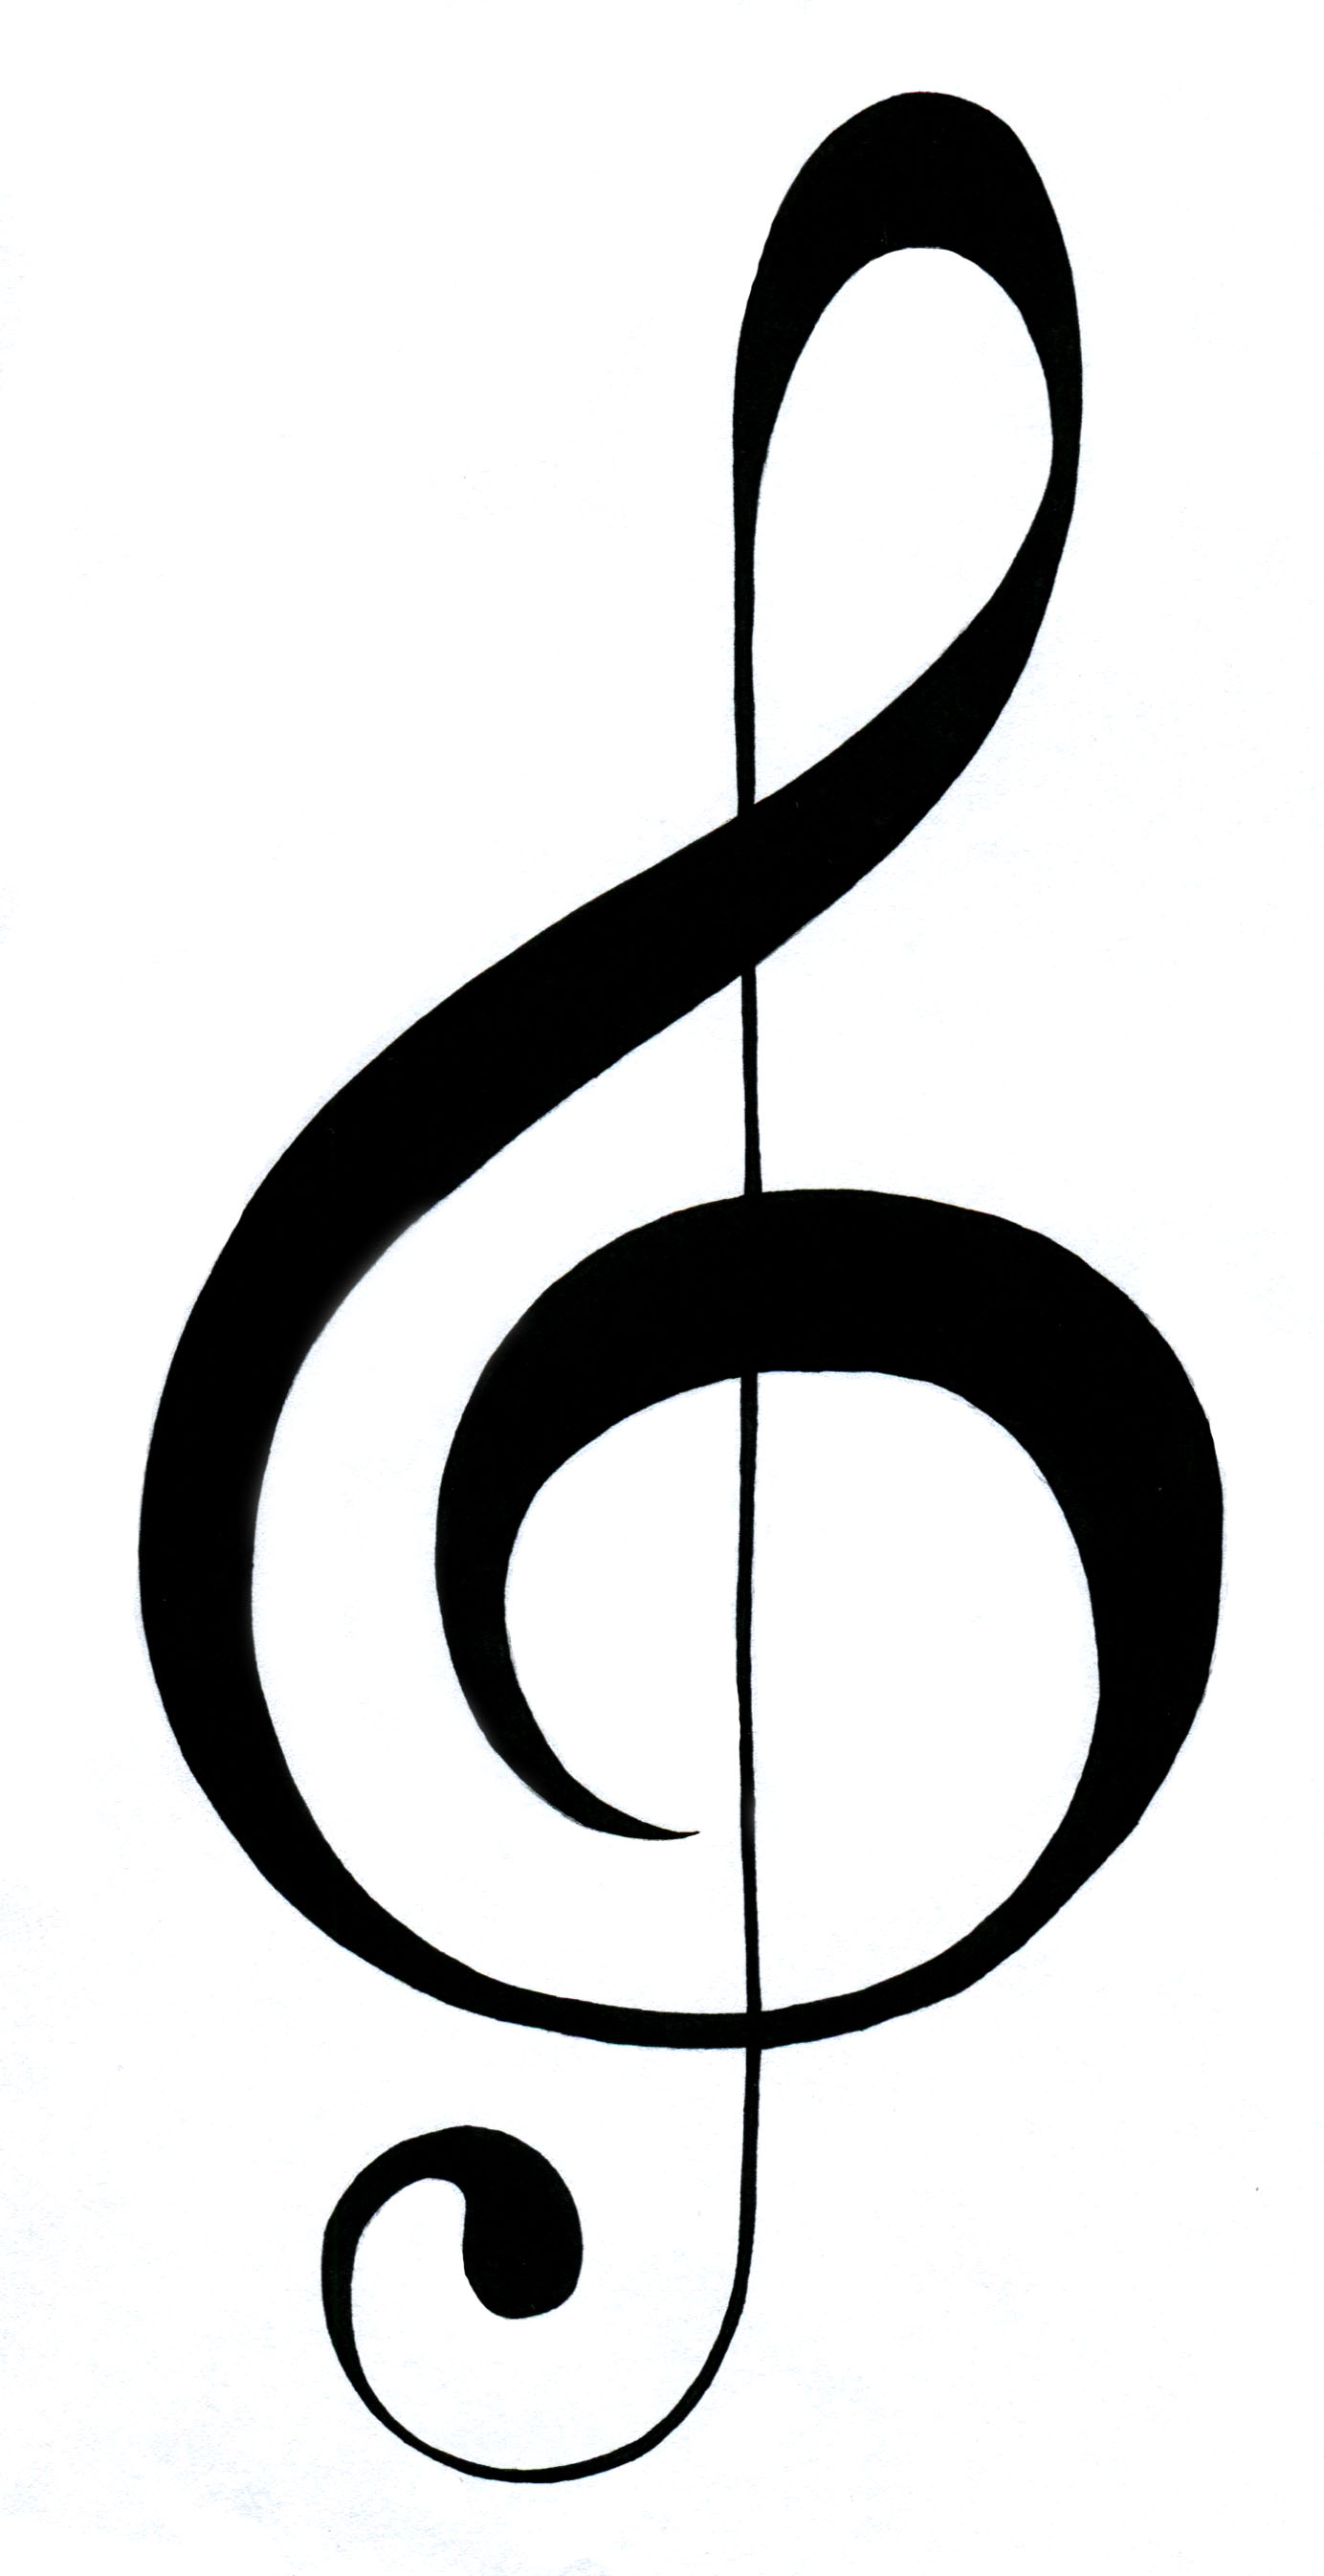 64 Images Of Picture Of Treble Clef You -64 Images Of Picture Of Treble Clef You Can Use These Free Cliparts-1